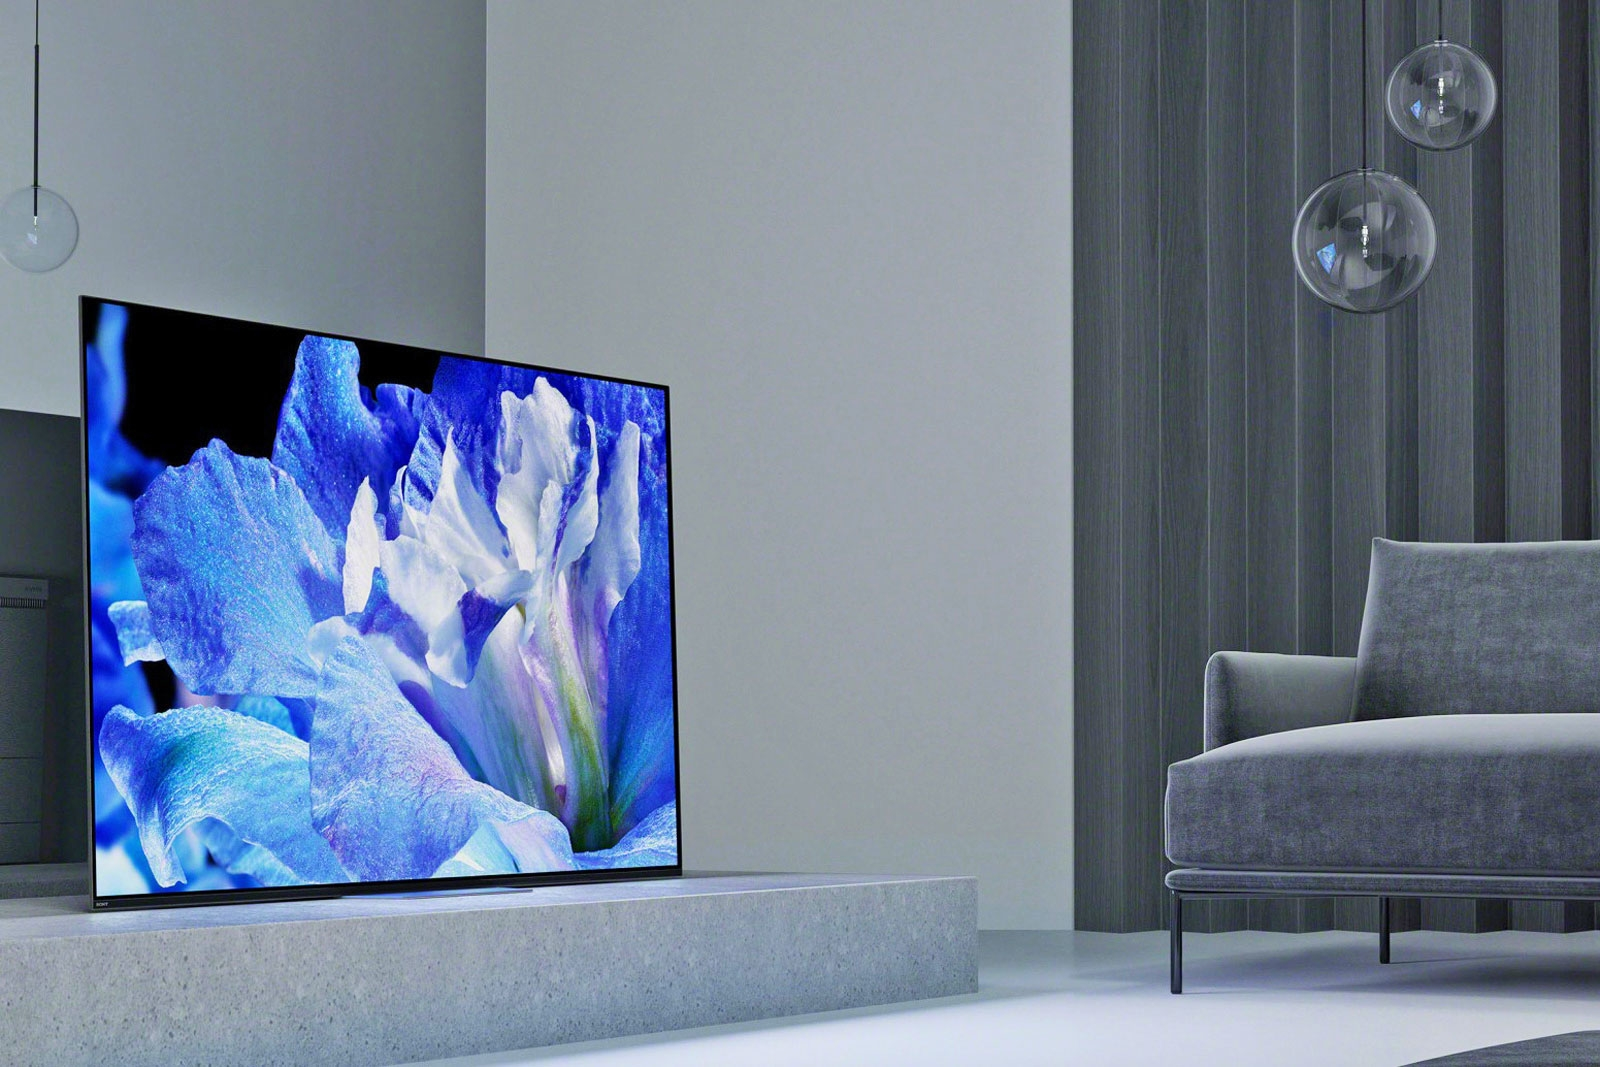 Sony's 2018 OLED TV starts at $2,800 | DeviceDaily.com